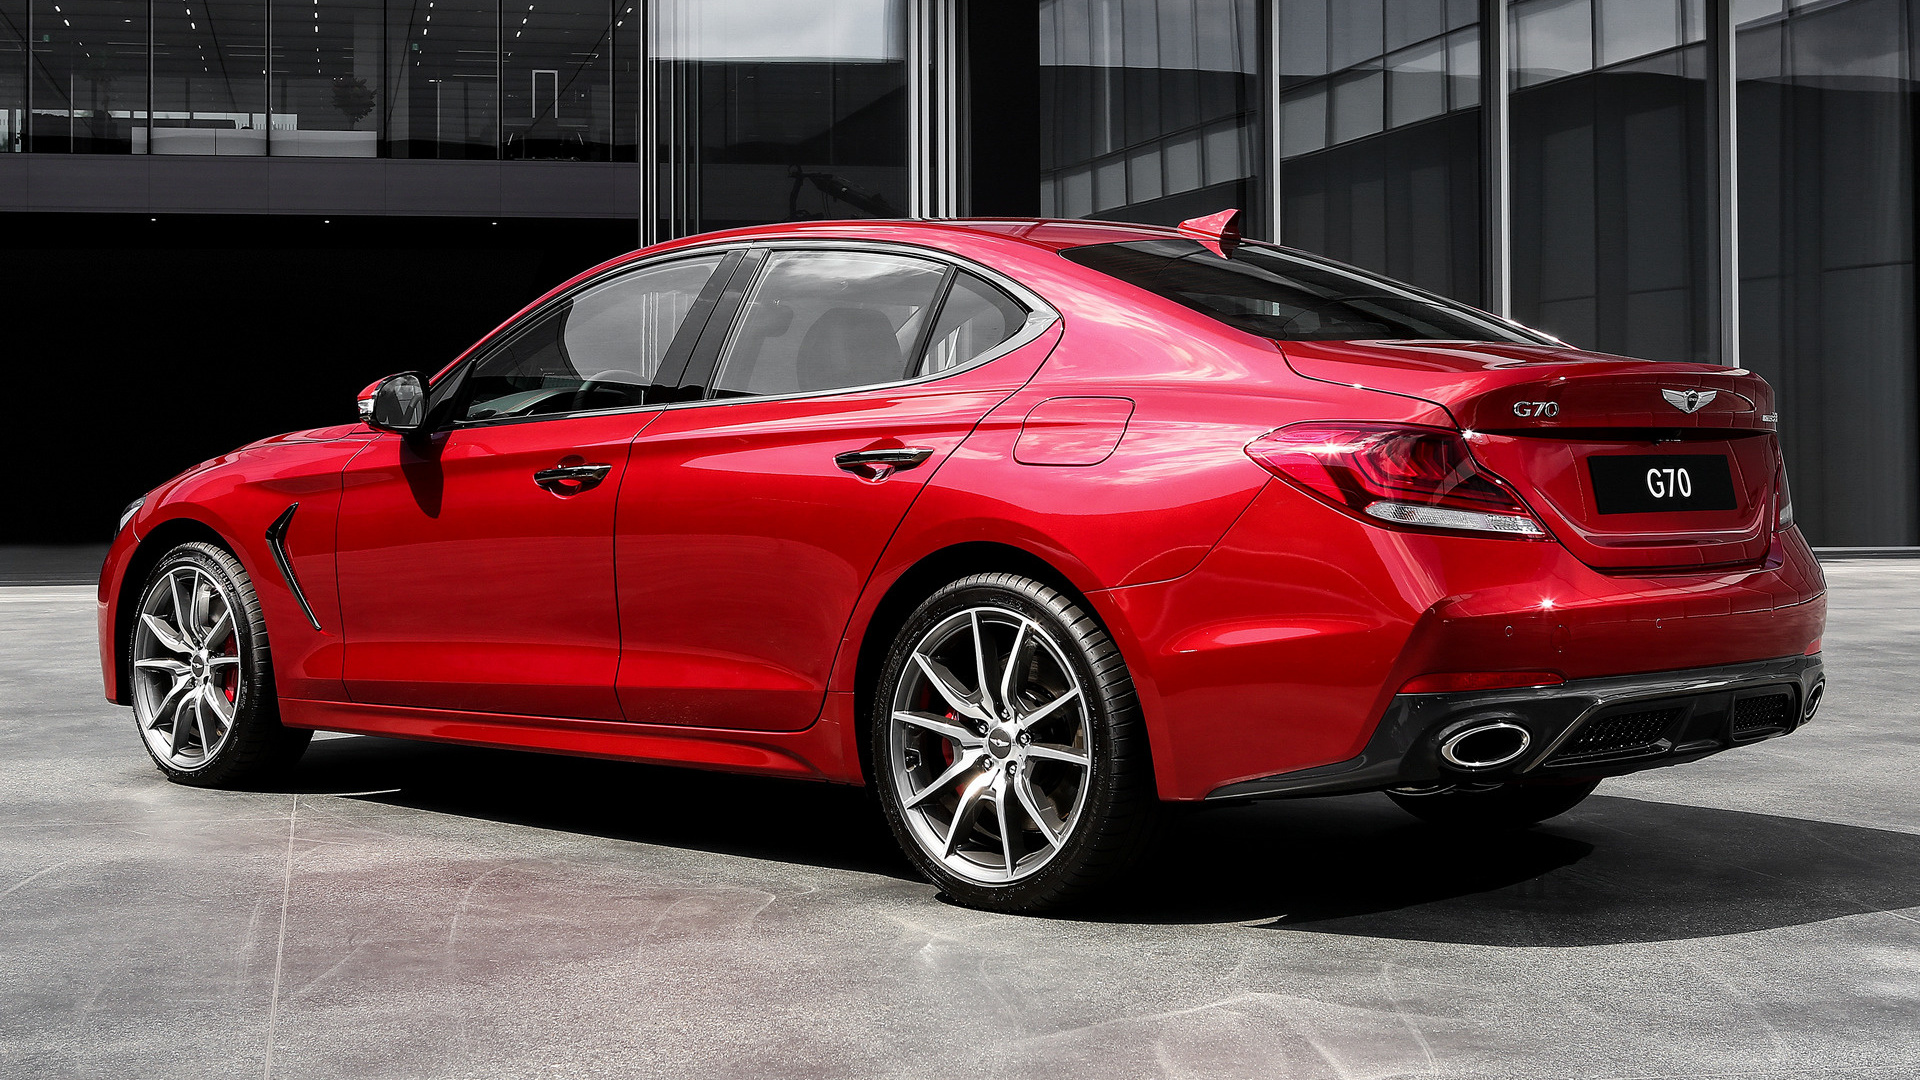 Genesis G70 (2018) Wallpapers and HD Images - Car Pixel